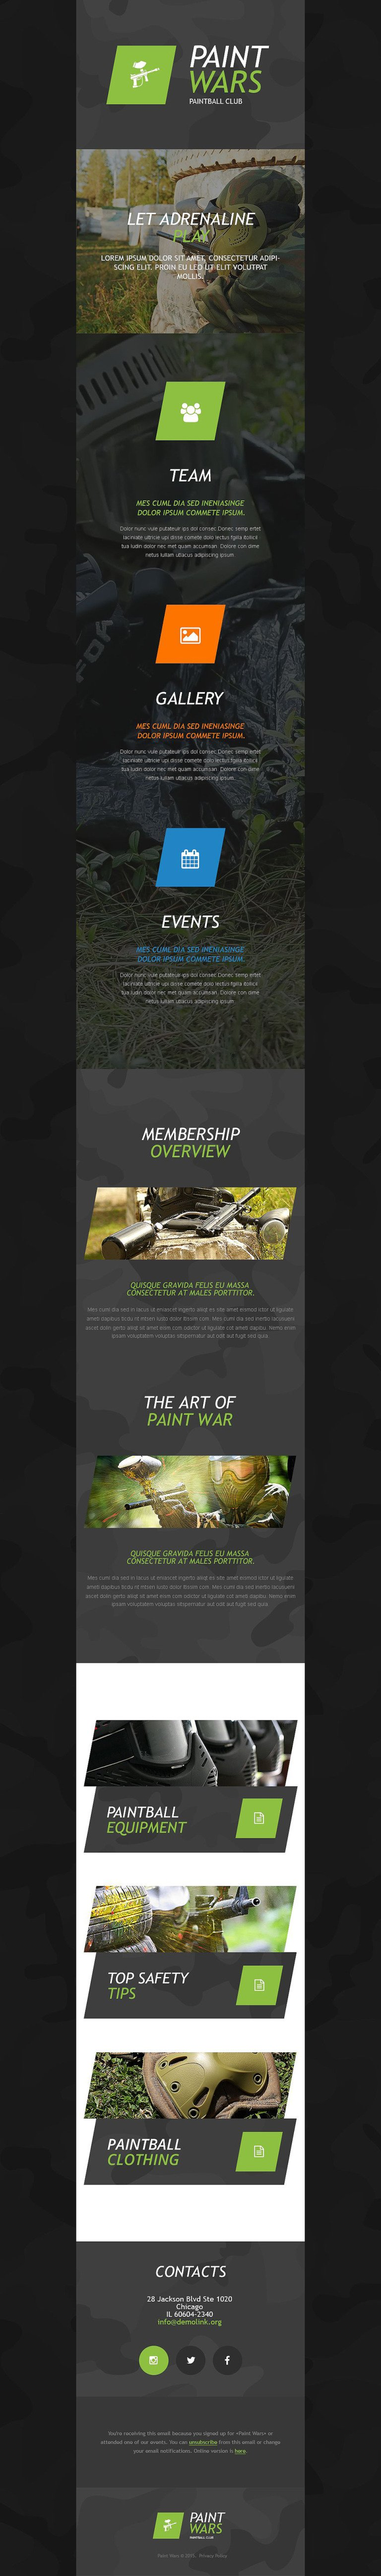 Paintball Responsive Newsletter Template New Screenshots BIG